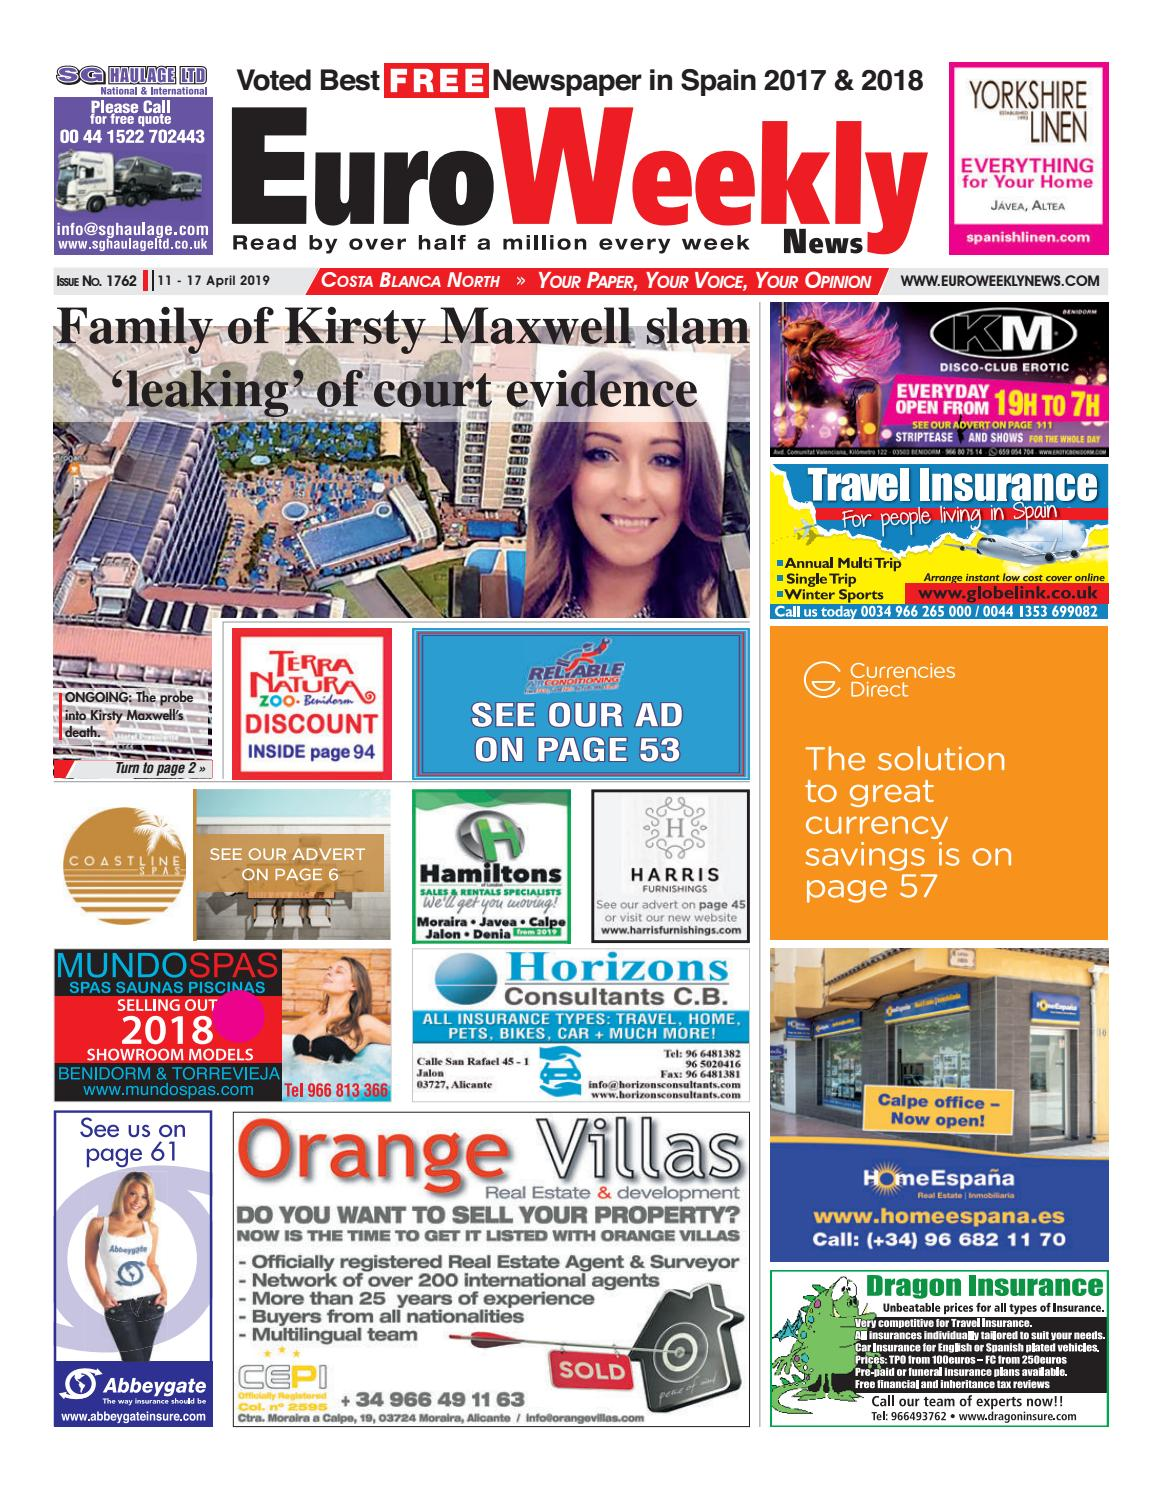 81eb2e1f38968 Euro Weekly News - Costa Blanca North 11 - 17 April 2019 Issue 1762 by Euro  Weekly News Media S.A. - issuu